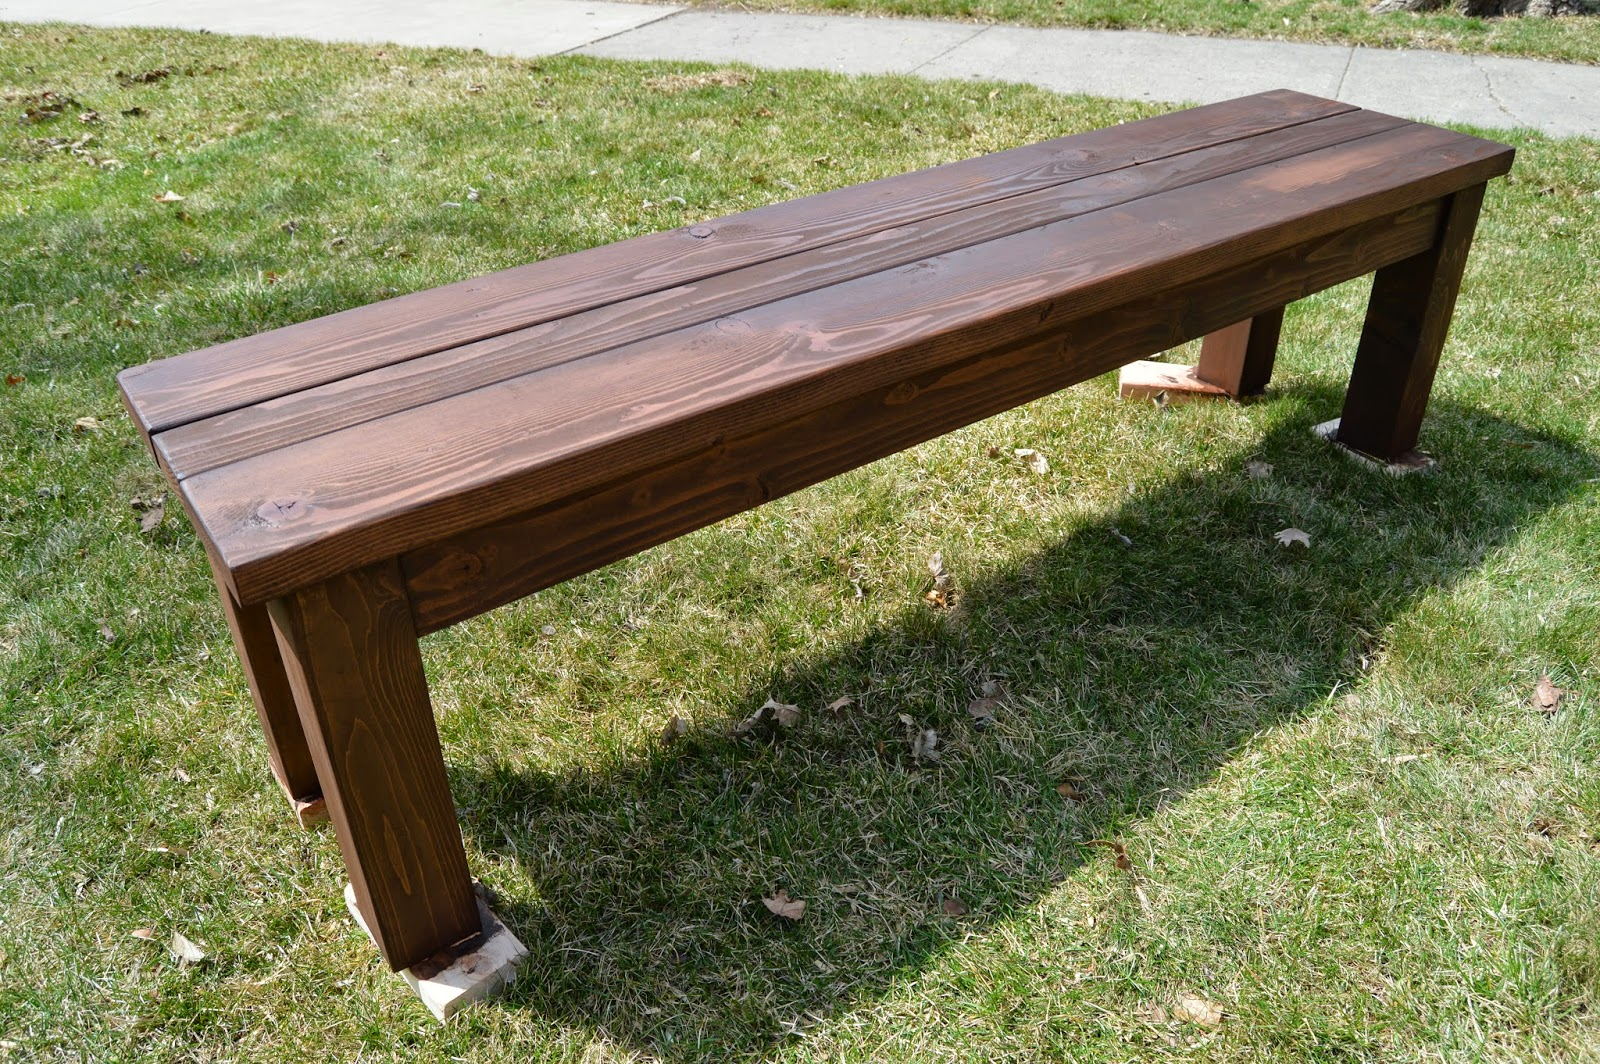 KRUSE'S WORKSHOP: Simple Indoor/Outdoor Rustic Bench Plan